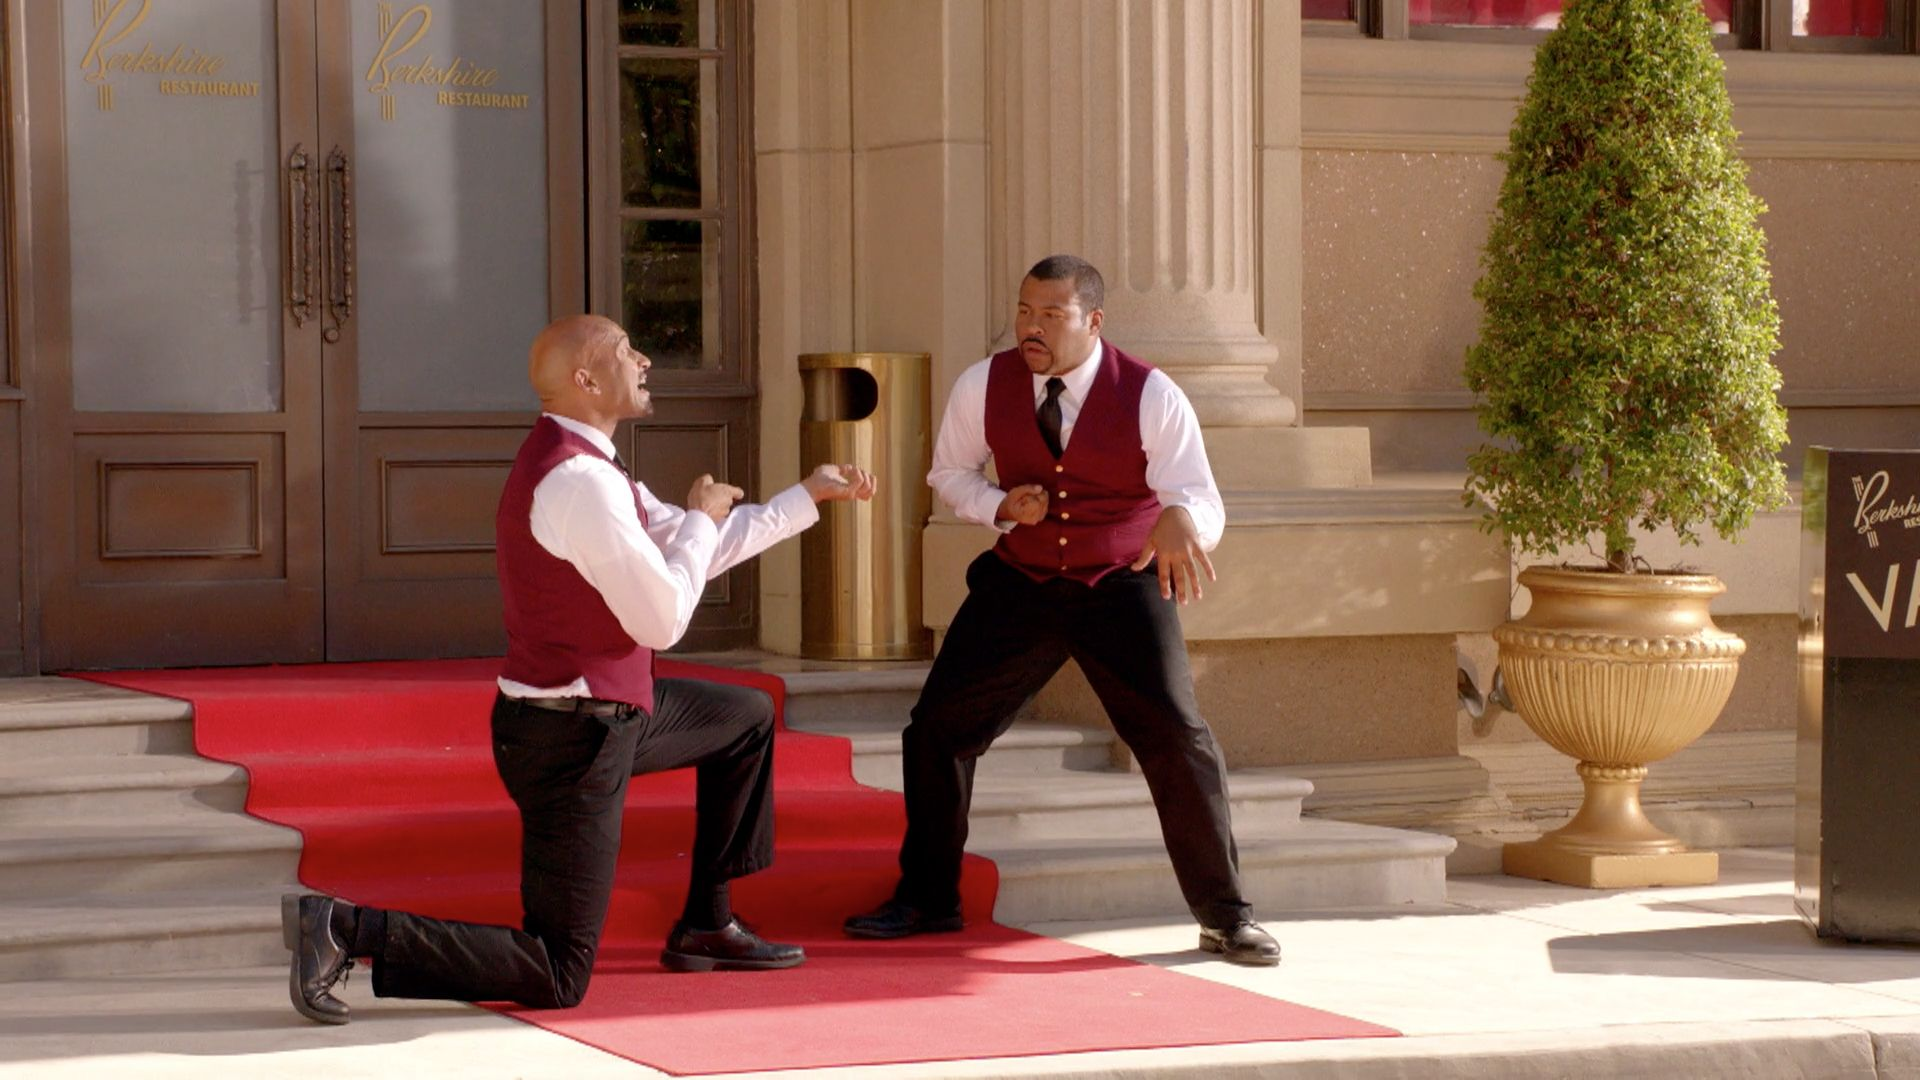 Game Of Thrones Recap Uncensored Key And Peele Video Clip Comedy Central